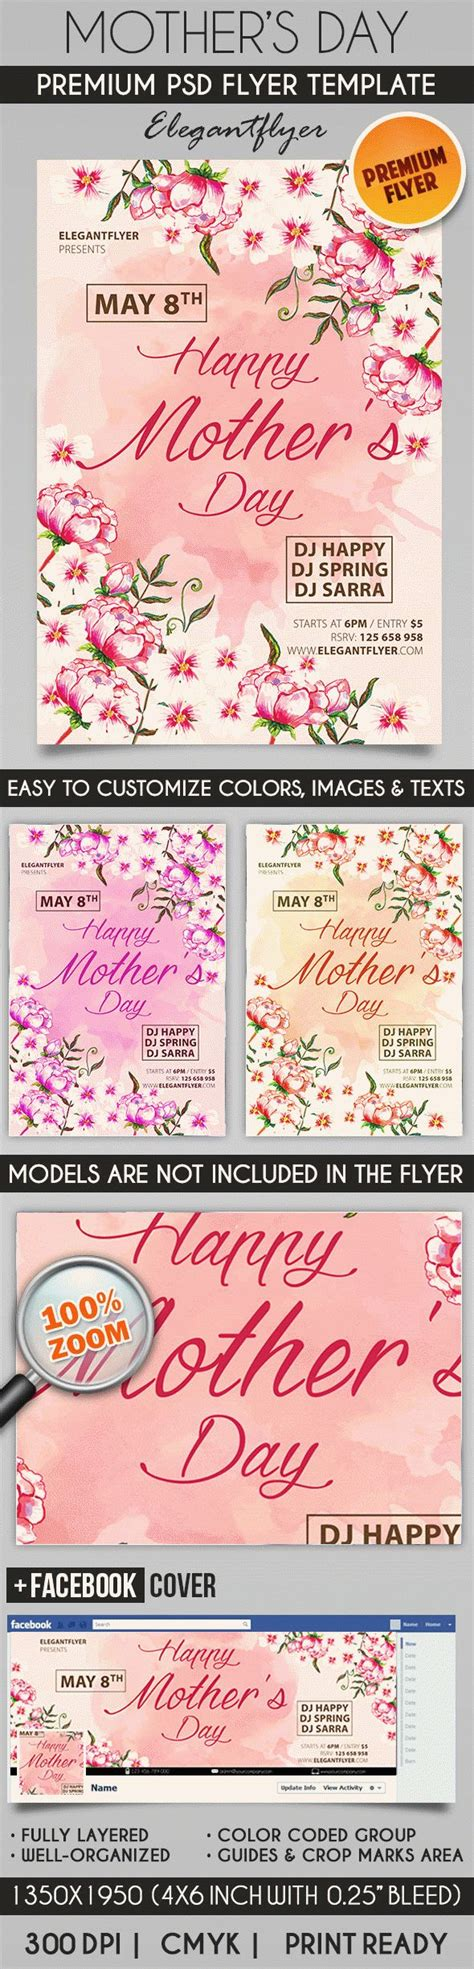 mothers day card psd template flowers for mothers day psd poster by elegantflyer